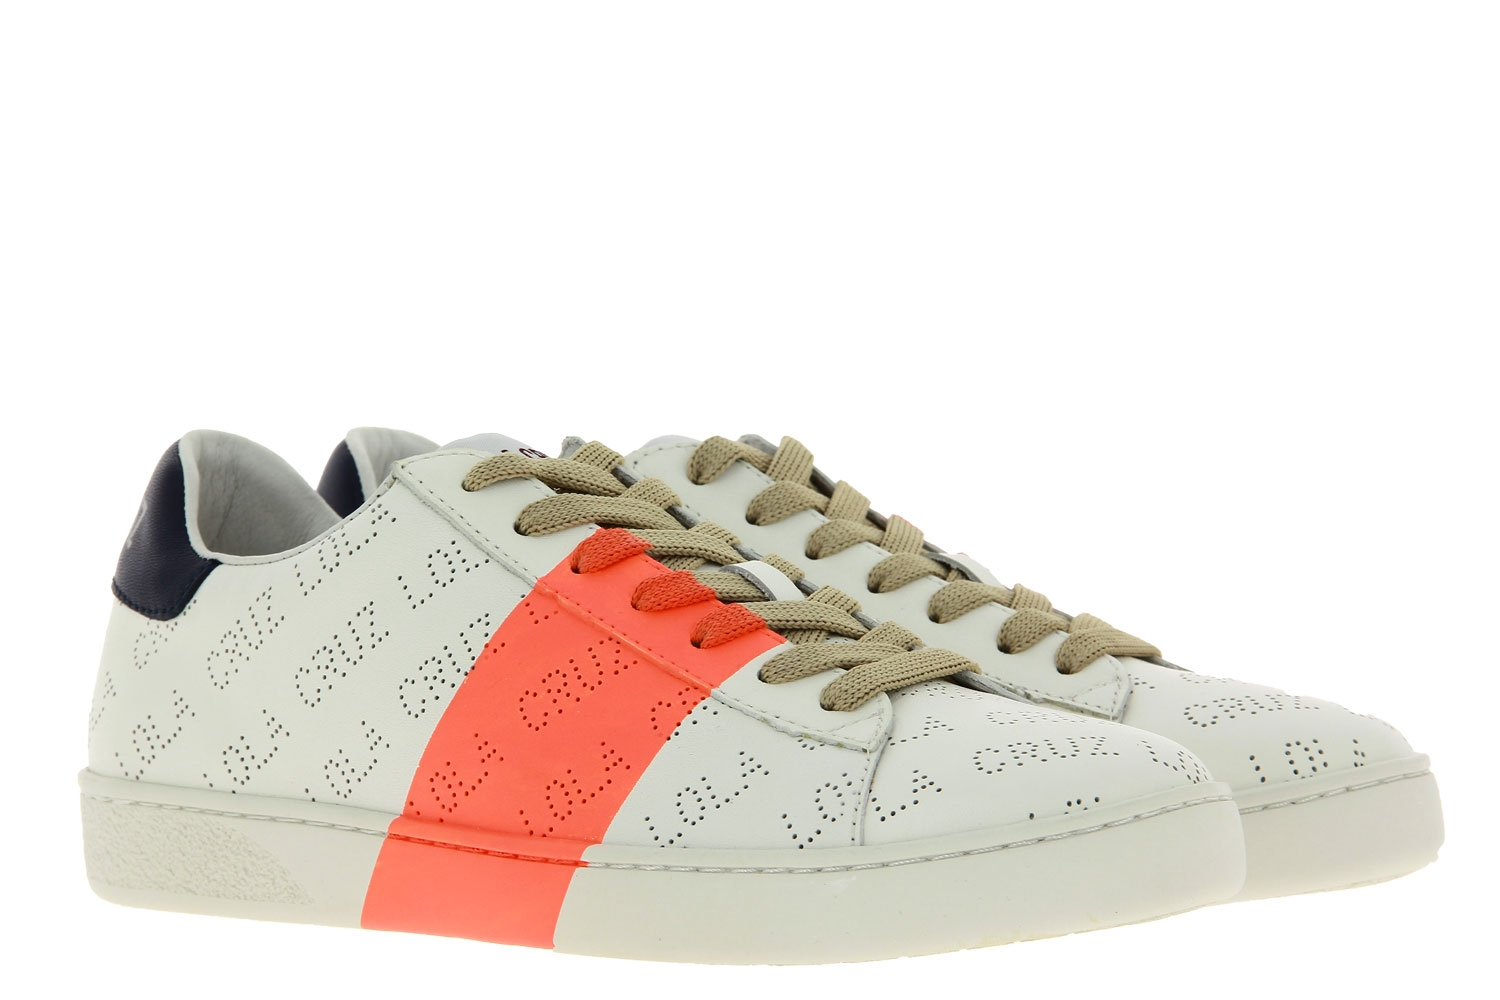 Lola Cruz Sneaker NAPPA ORANGE WHITE (41)